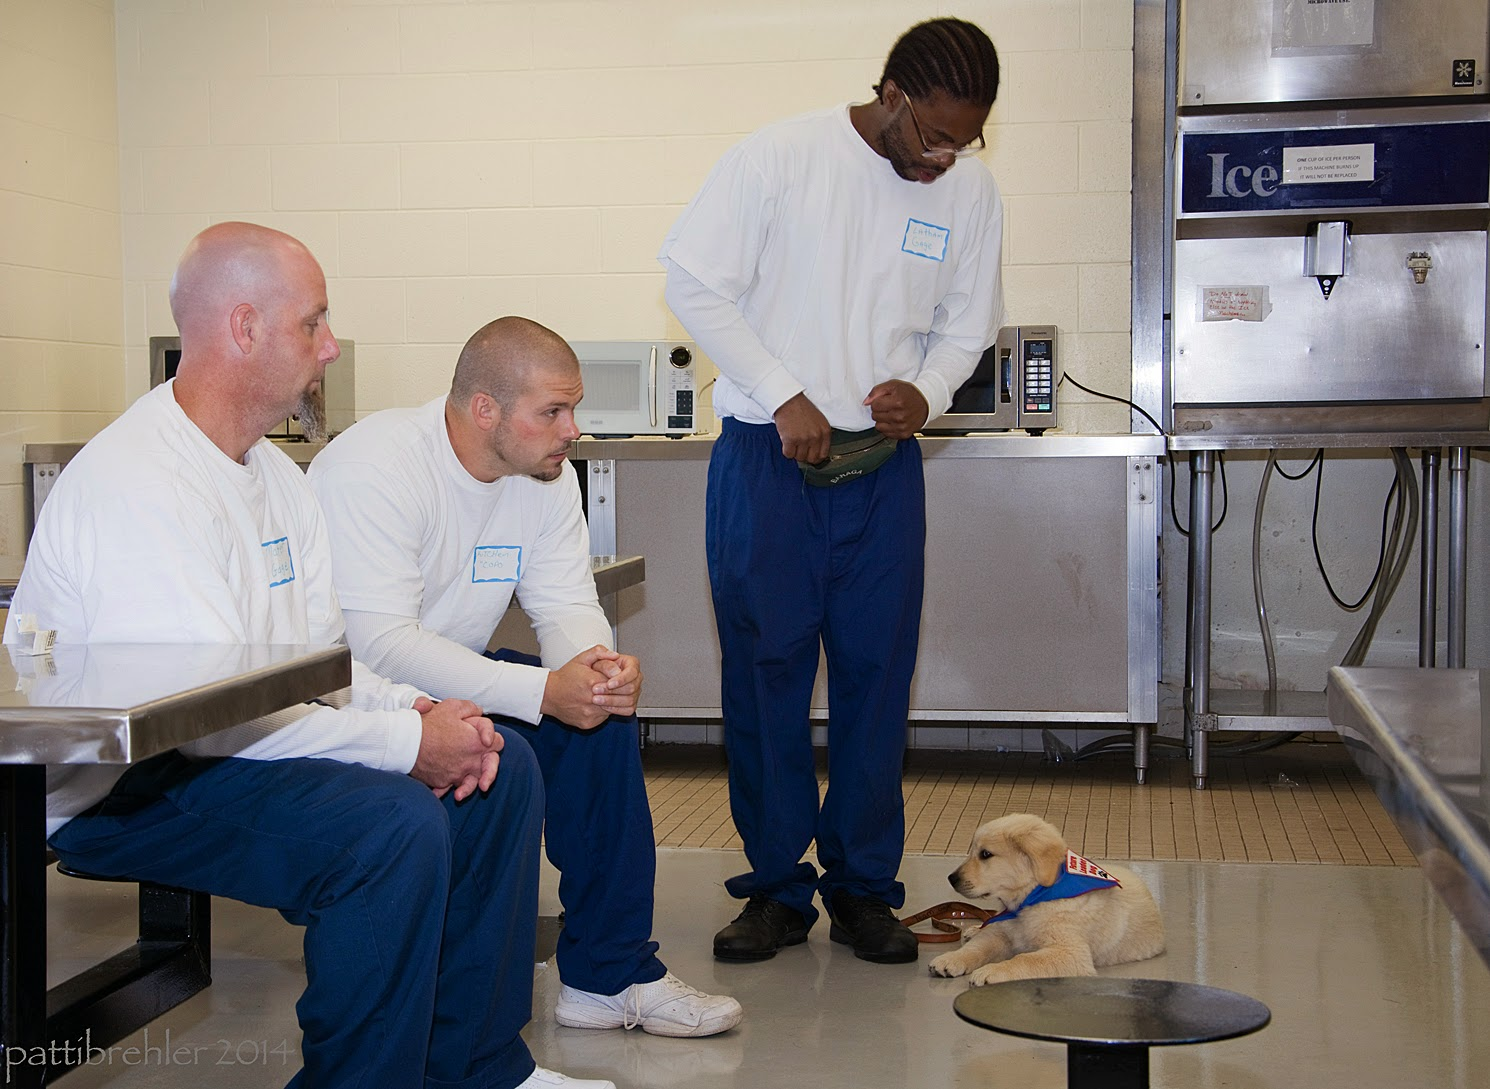 Two bald men are sitting on lunch table stools on the left of the picture, they are both wearing blue prison pants and white long-sleeved t-shirts.  They both have their hands folded on their knees and are looking down at a small golden retriever puppy that is lying on a cement floor to the right. The puppy is on the left side of an african american man who is standing between the sitting men and the puppy. This man is wearing glasses and the same blue pants and white t-shirt. He is looking down at the puppy. There are stainless steel ice machines in the background.